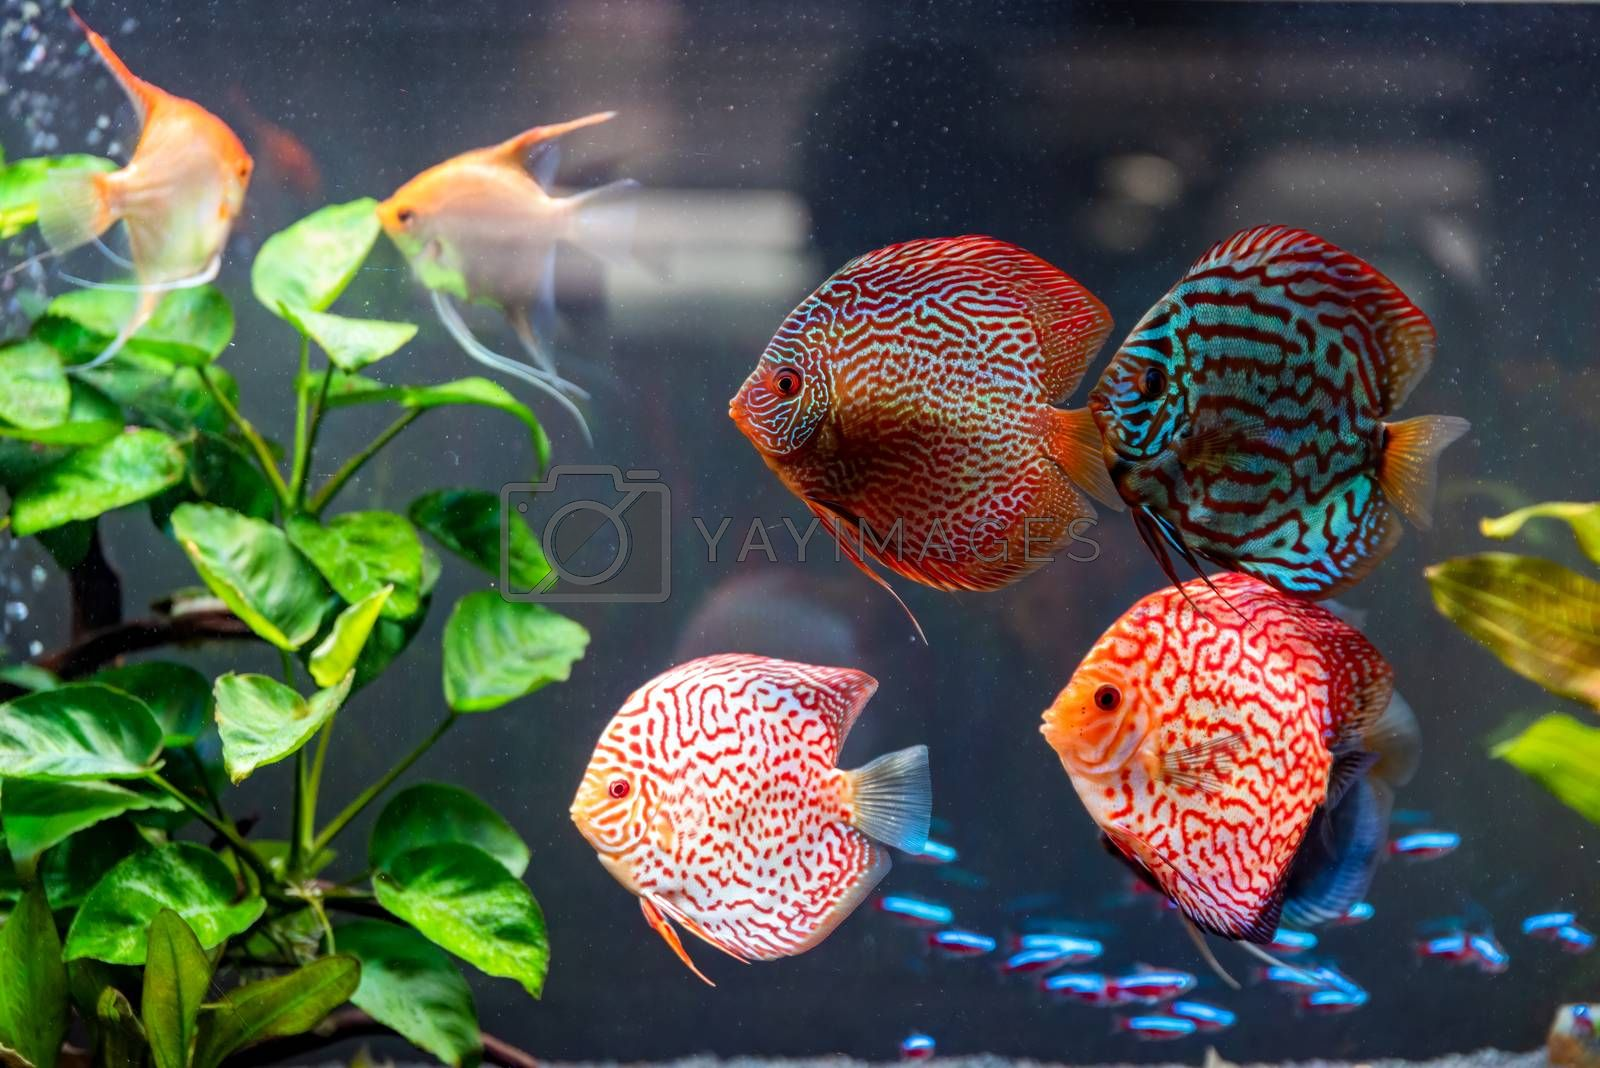 Colorful fish from the spieces Symphysodon discus in aquarium. by Madphotos